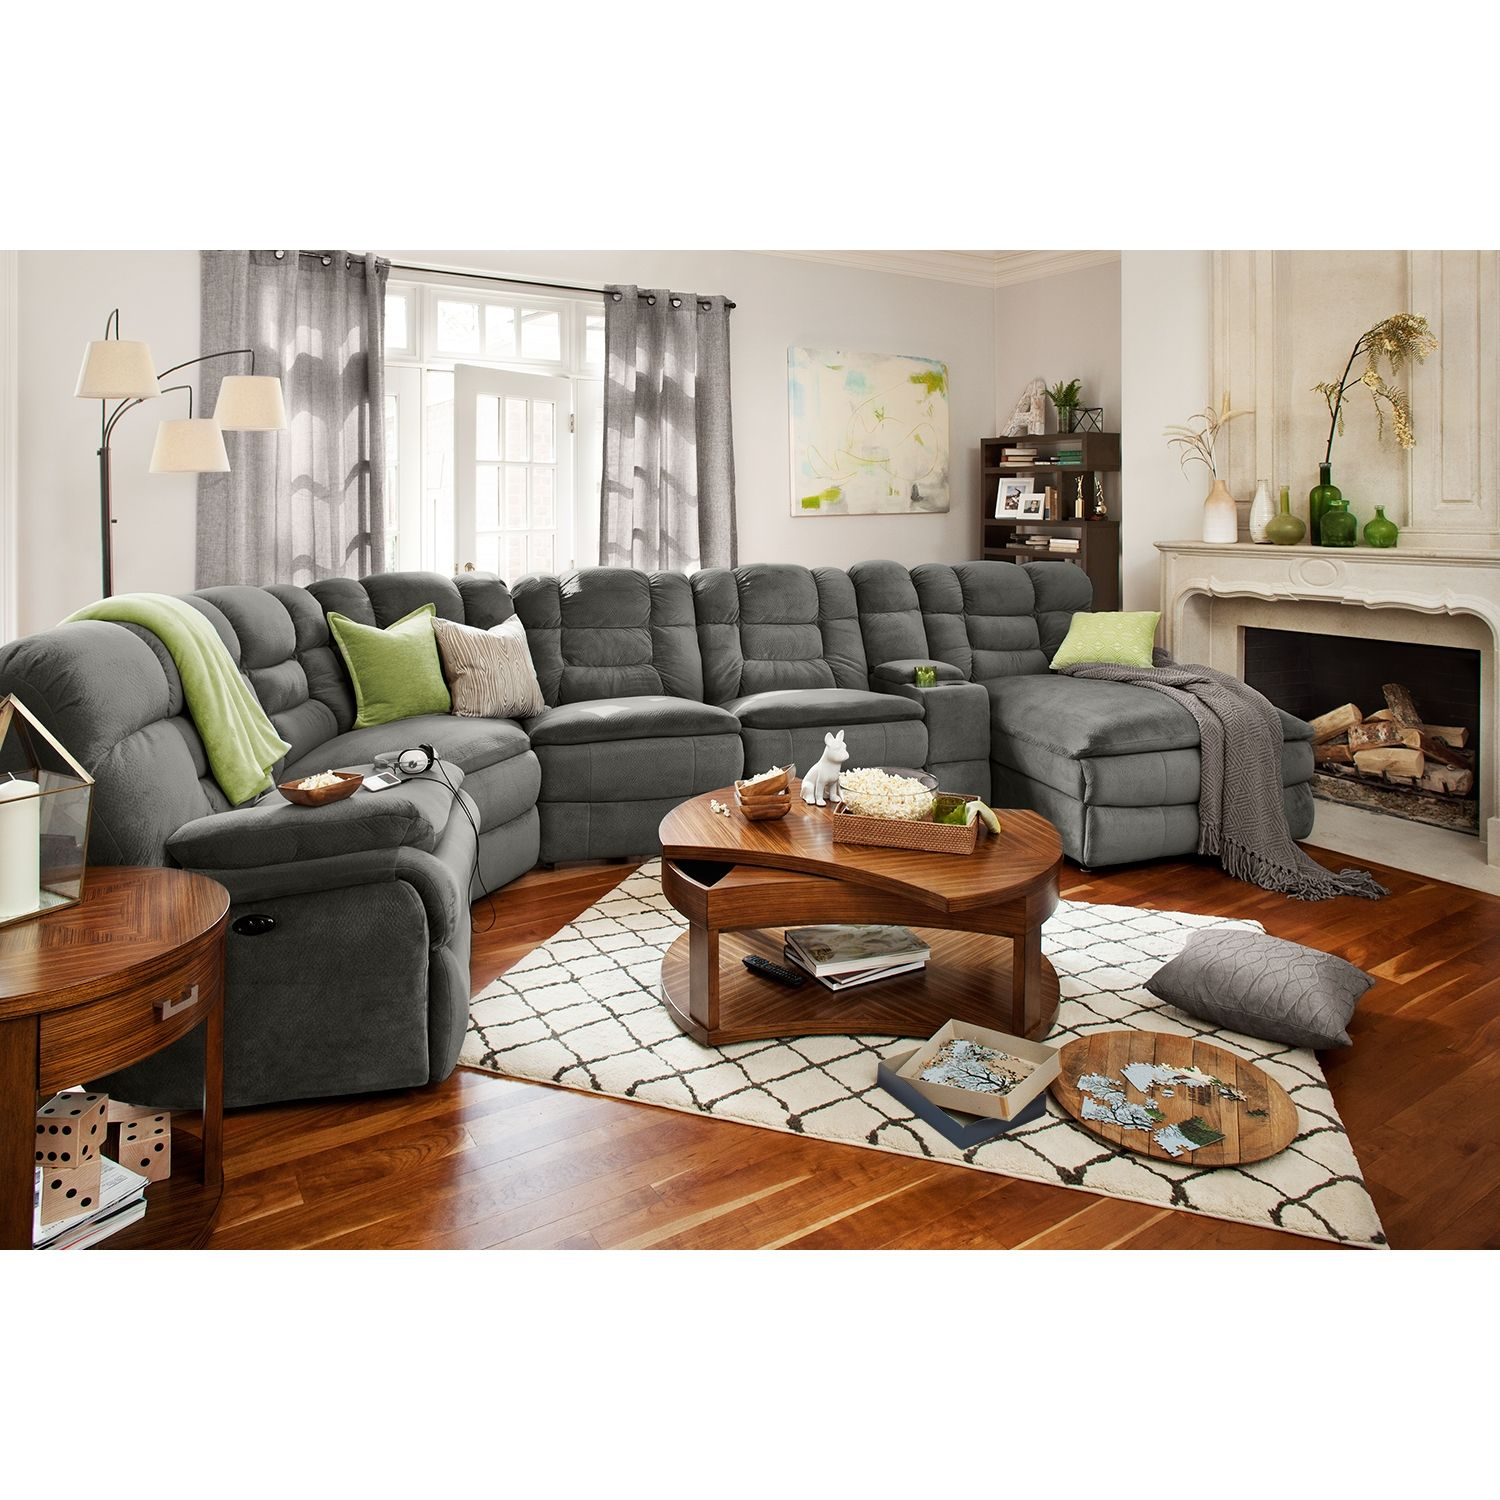 Value City Living Room Furniture Its Called The Big Softie For A Reason So Soft So Durable Big